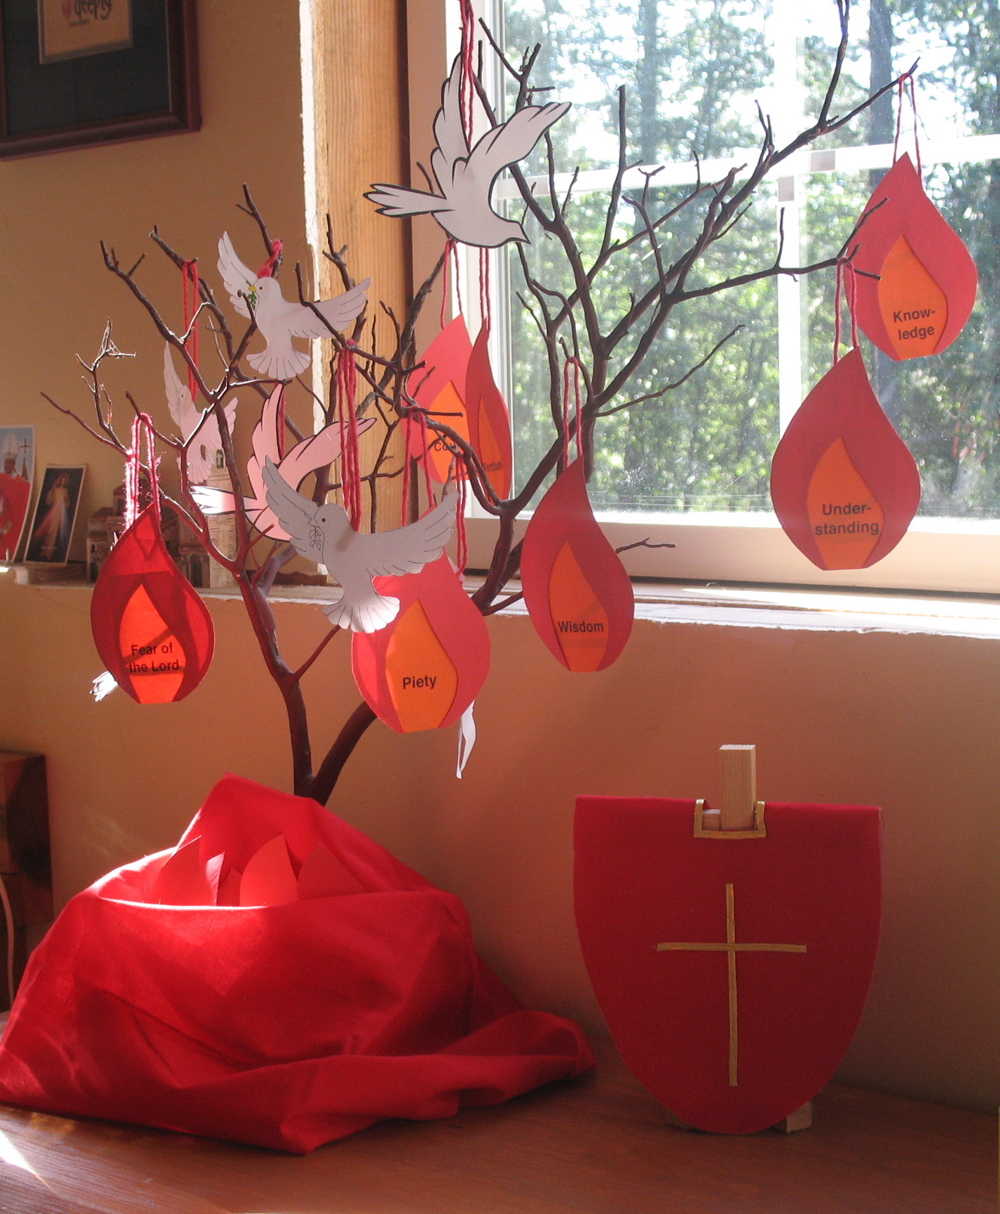 pentecost activities for sunday school